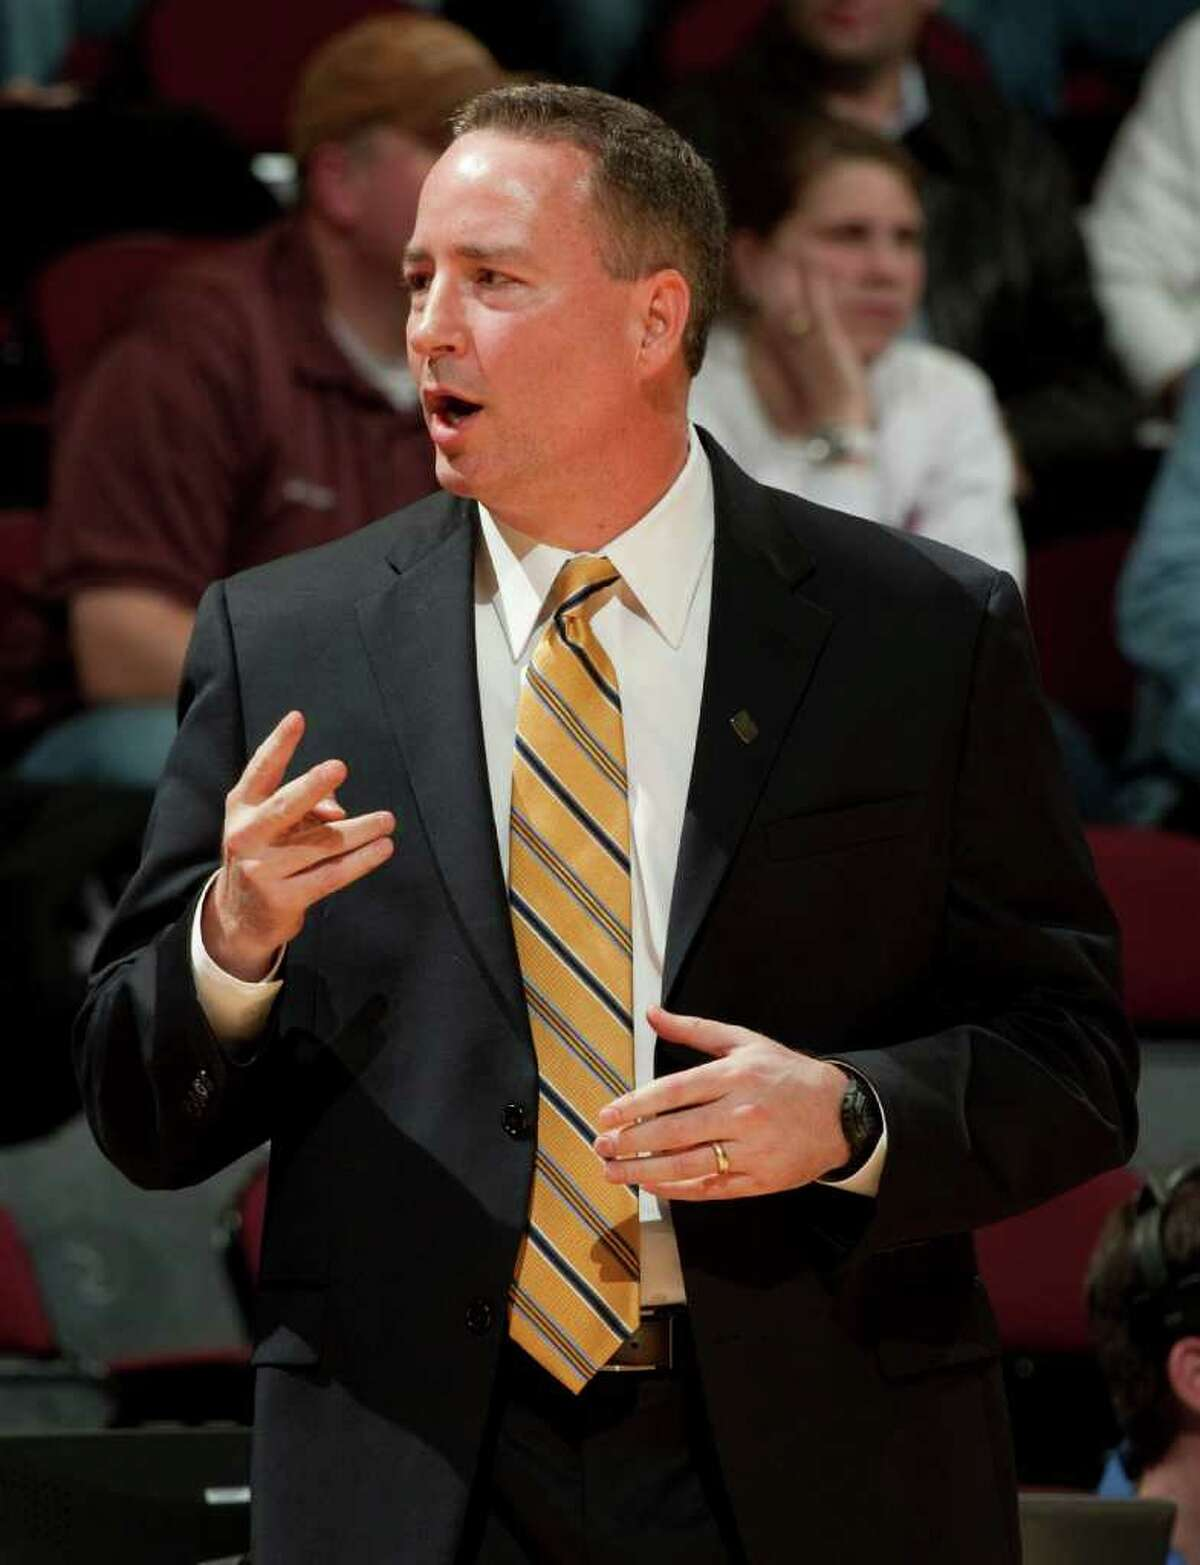 Texas A&M head coach Billy Kennedy directs his team during the second half of an NCAA college basketball game against Sam Houston State, Wednesday, Dec. 7, 2011, in College Station, Texas. Texas A&M defeated Sam Houston State 64-37. (AP Photo/Dave Einsel)